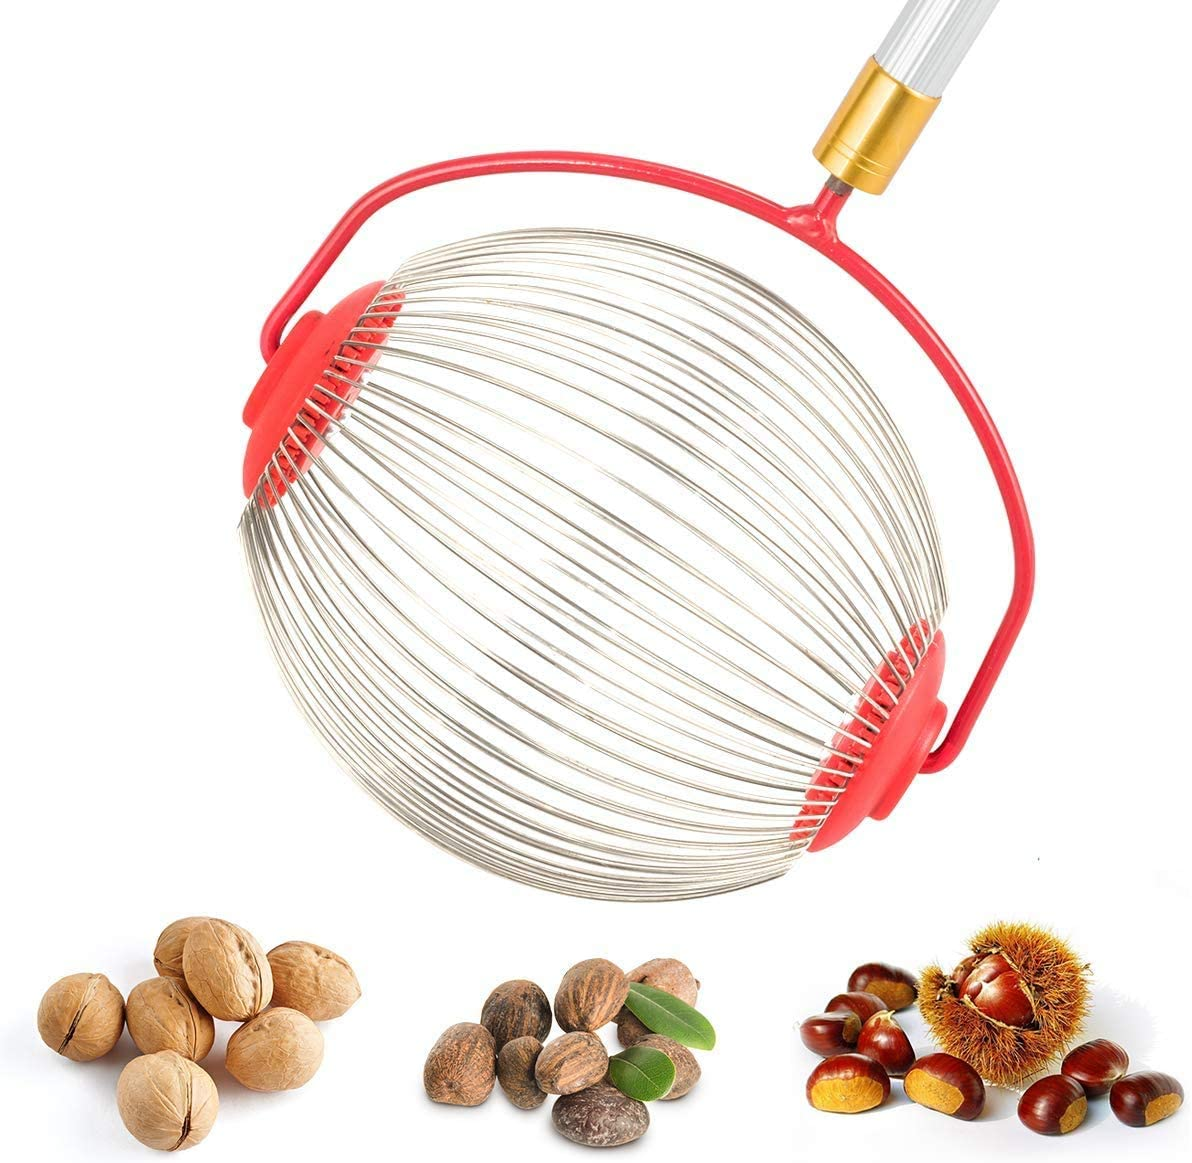 """A Picks Up Walnuts Walnut Picker Tool Adjustable Lightweight Rolling Nut Wizard Picker Collector for Lawn Garden DZT1968 Medium Nut Gatherer Pecans and Other Objects 1/"""" to 3/"""" in Size"""